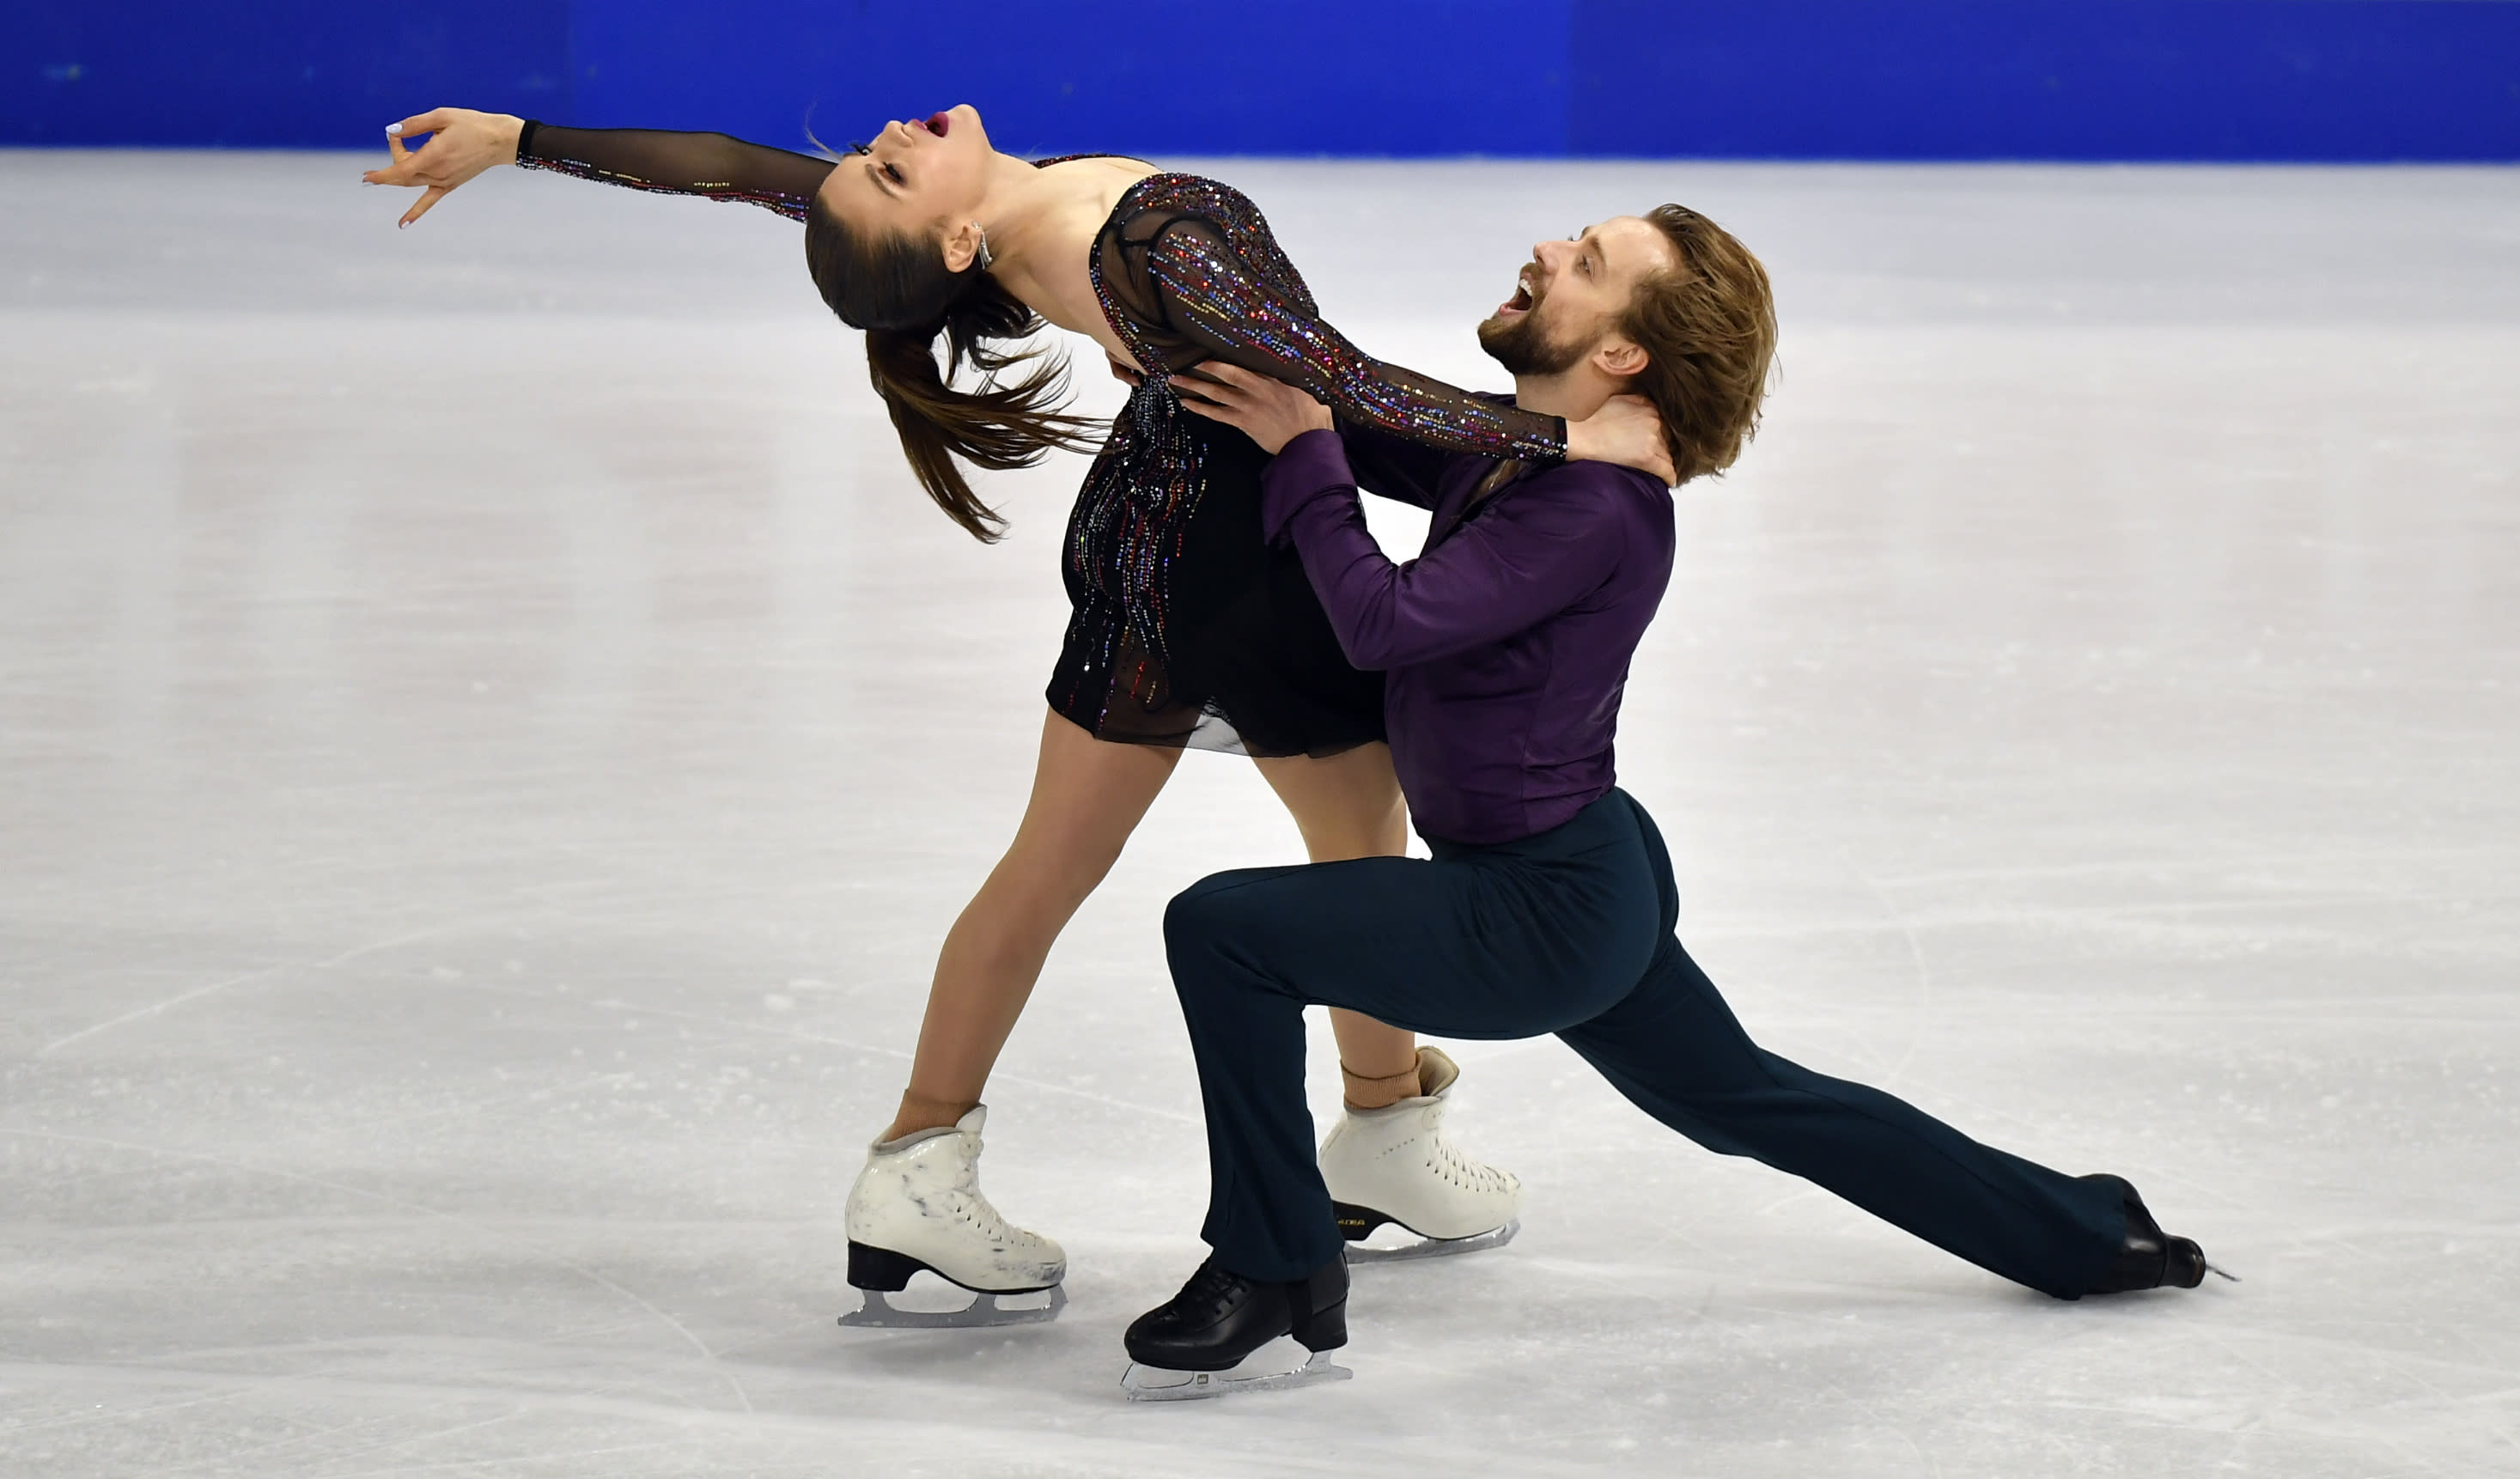 Kaitlin Hawayek and Jean-Luc Baker of the USA perform during the Ice Dance - Rhythm Dance at the Figure Skating World Championships in Stockholm, Sweden, Friday, March 26, 2021. (AP Photo/Martin Meissner)